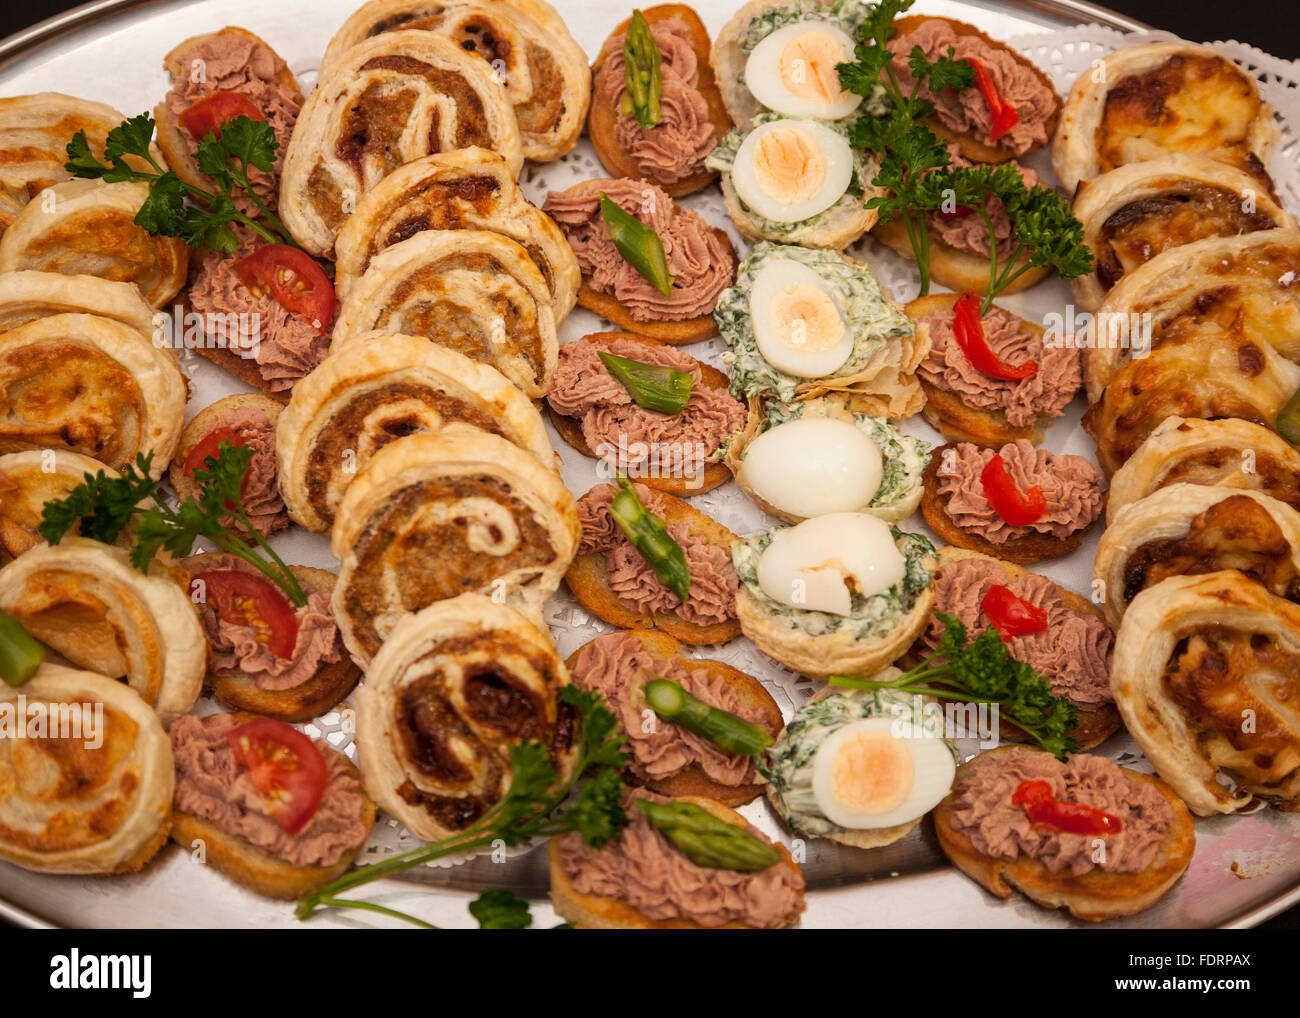 Buffet food at a party event - Stock Image